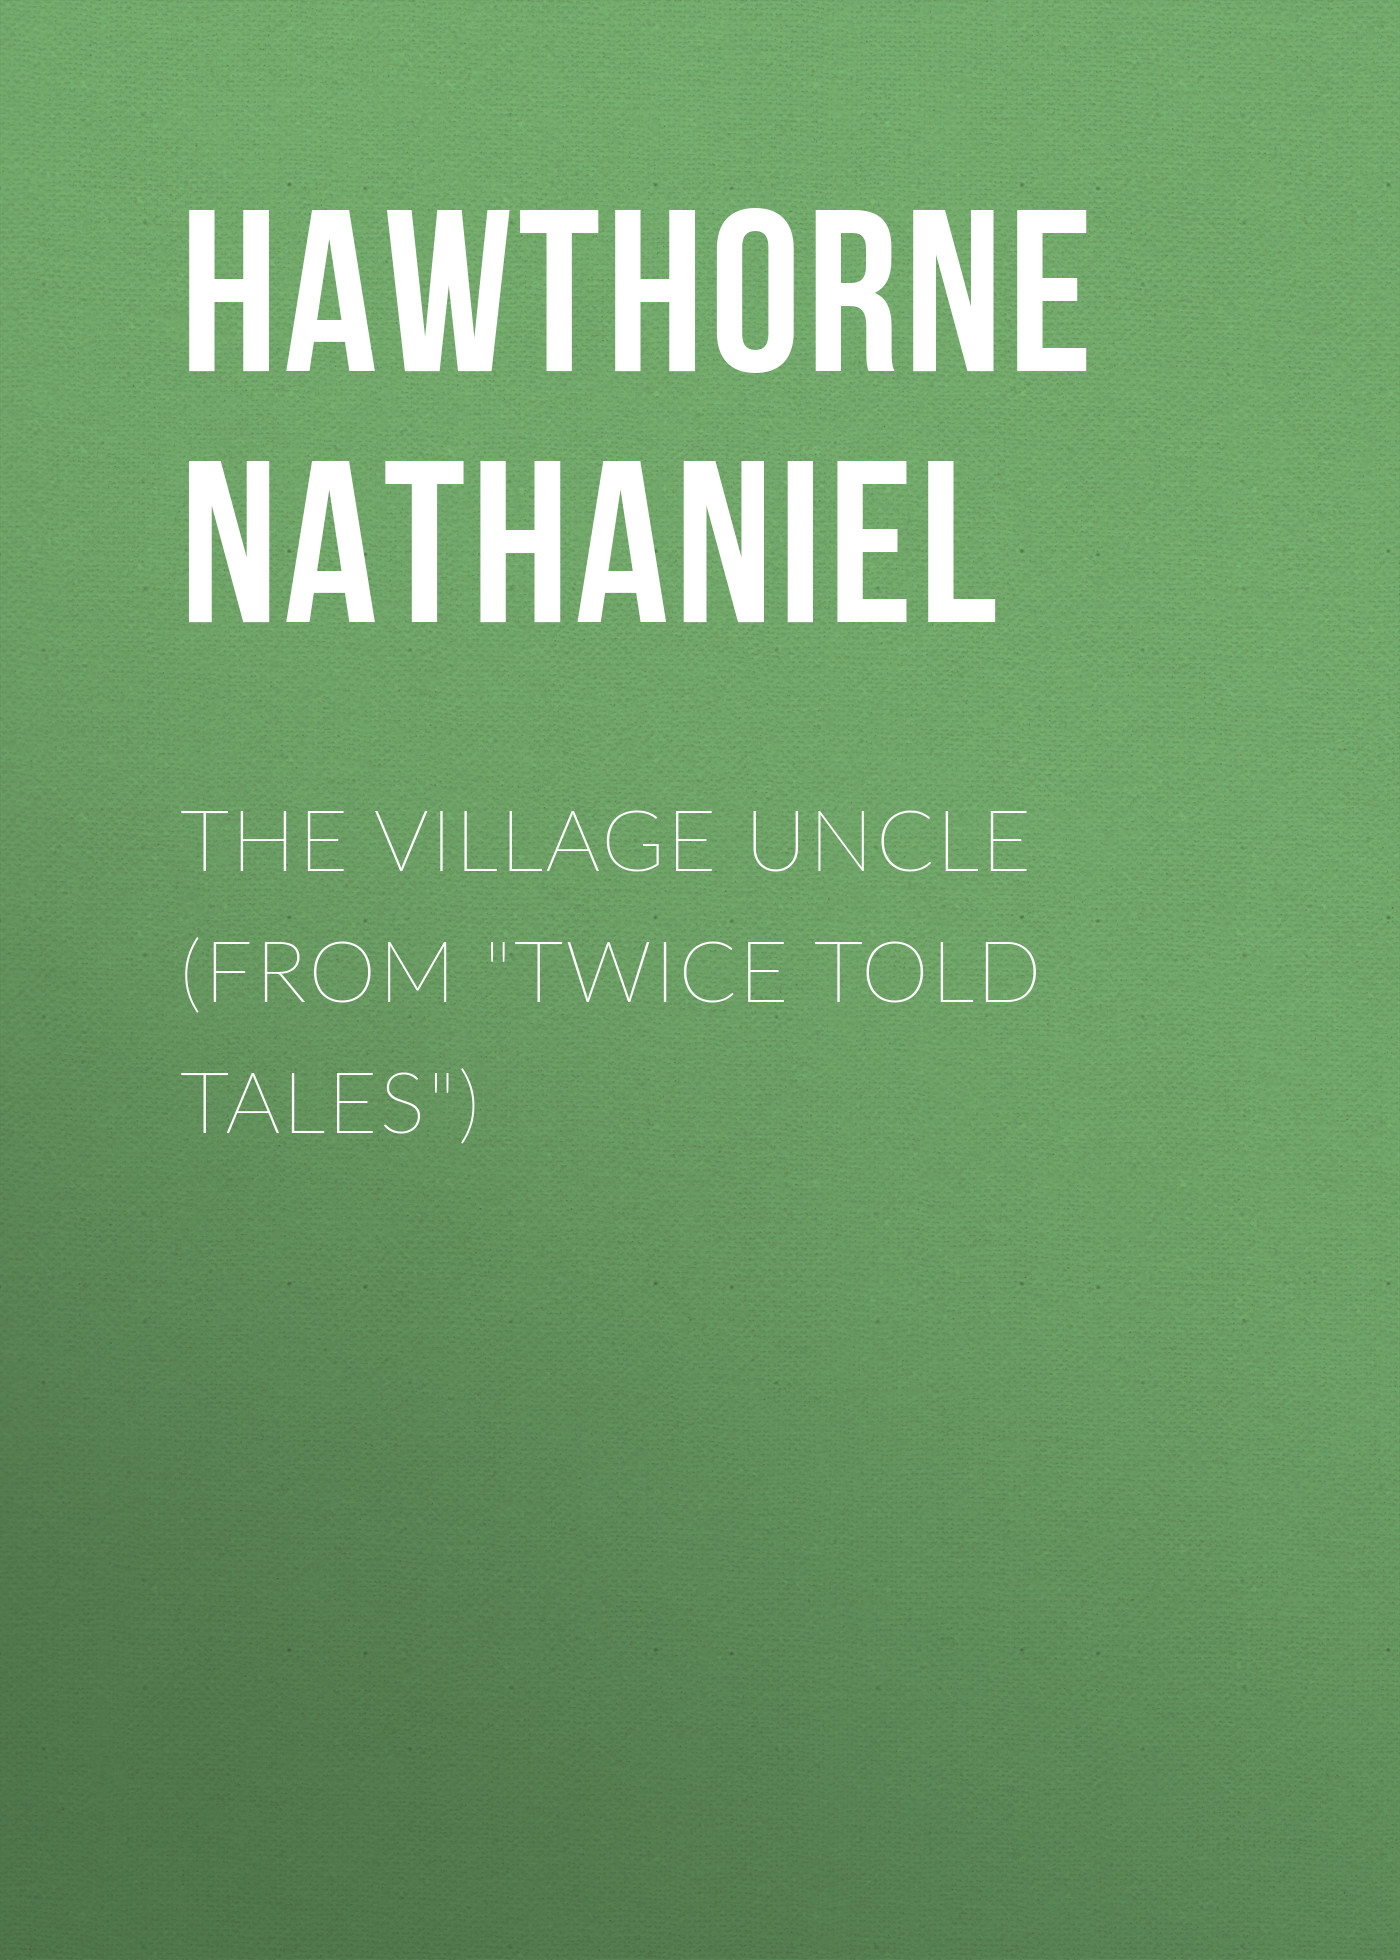 Hawthorne Nathaniel The Village Uncle (From Twice Told Tales) hawthorne nathaniel the threefold destiny from twice told tales